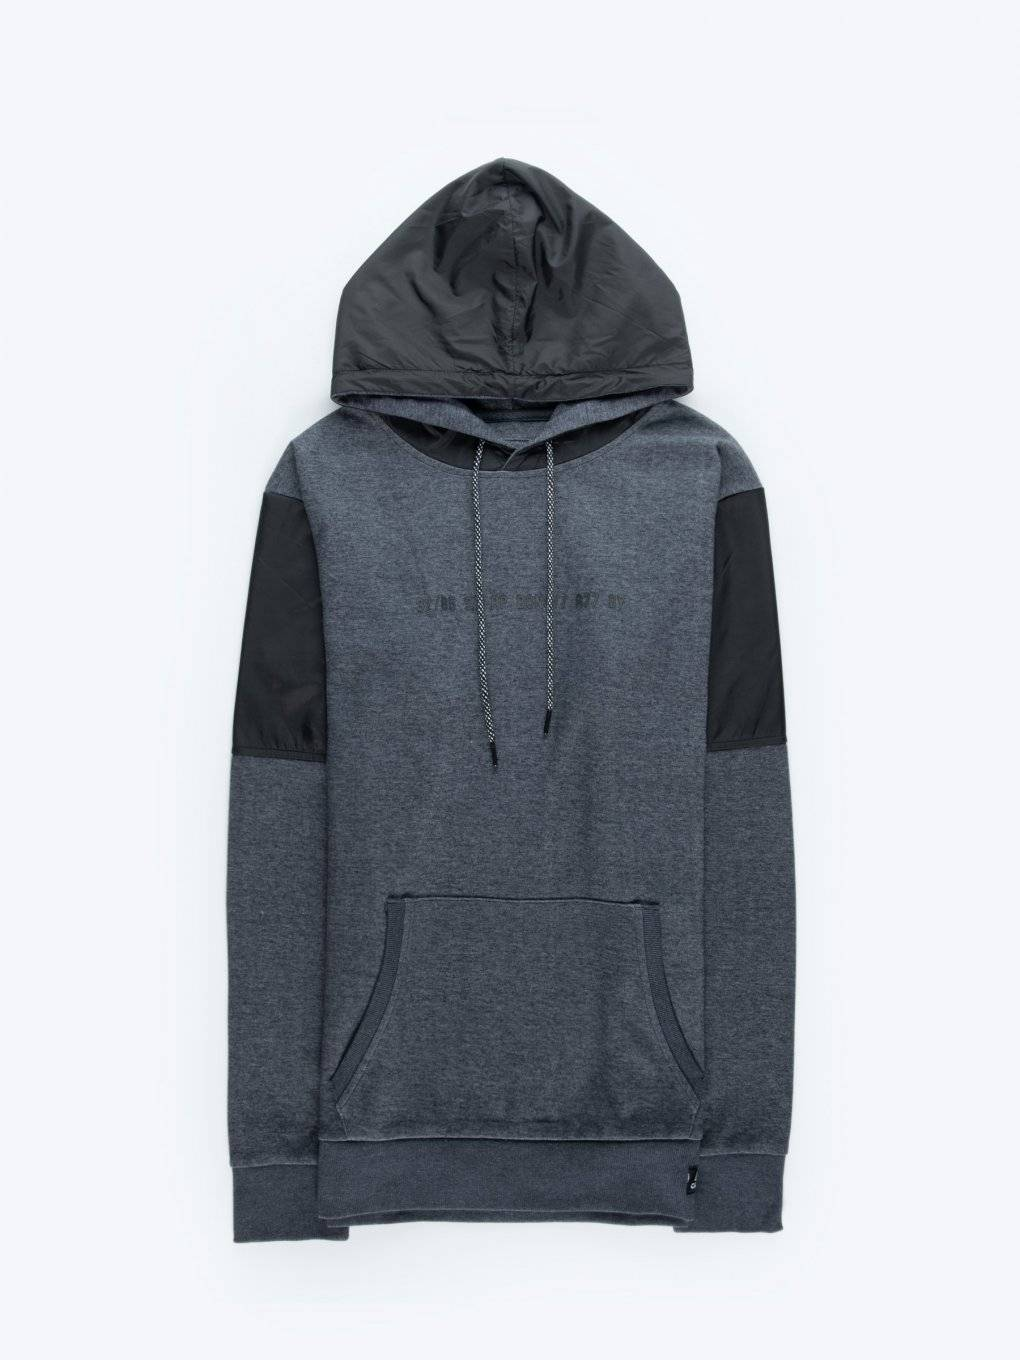 Combined marled hoodie with slogan print